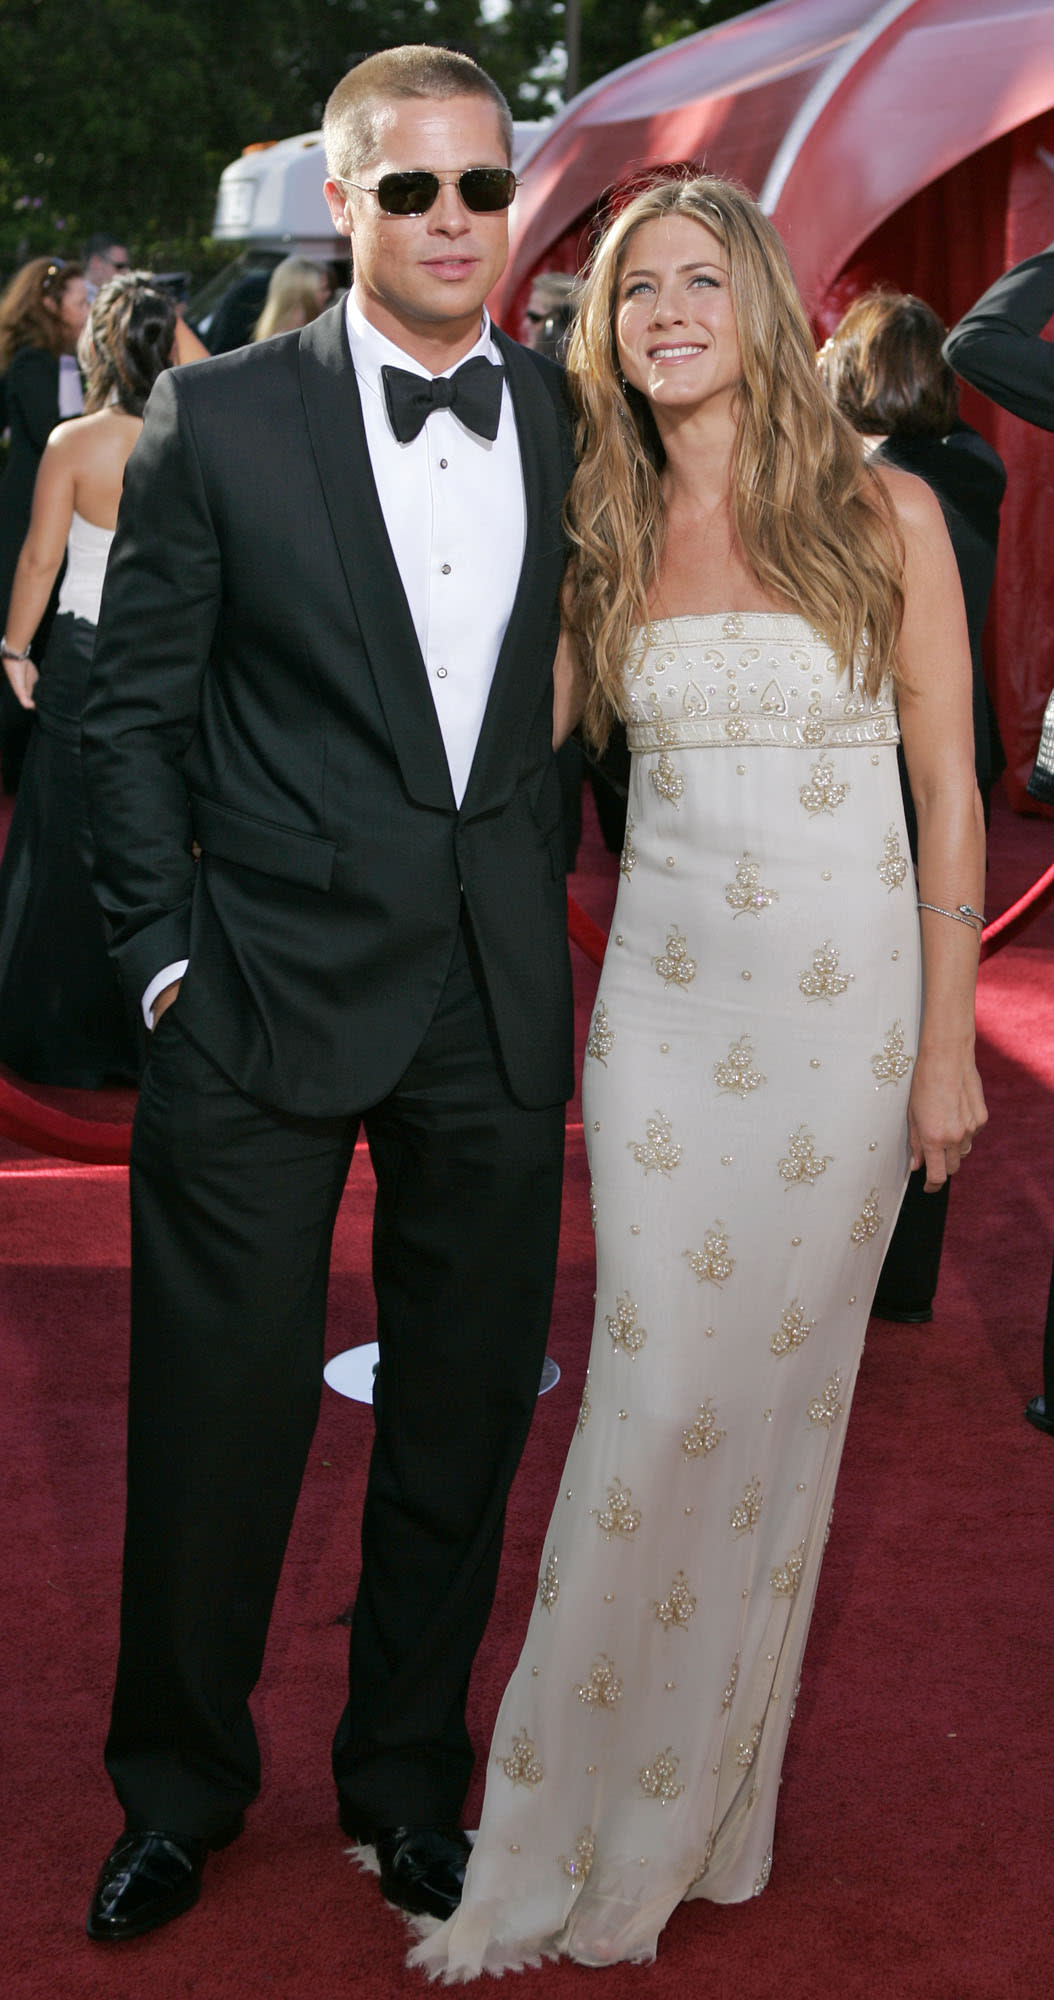 Fans speculate about Jennifer Aniston and Brad Pitt reunion